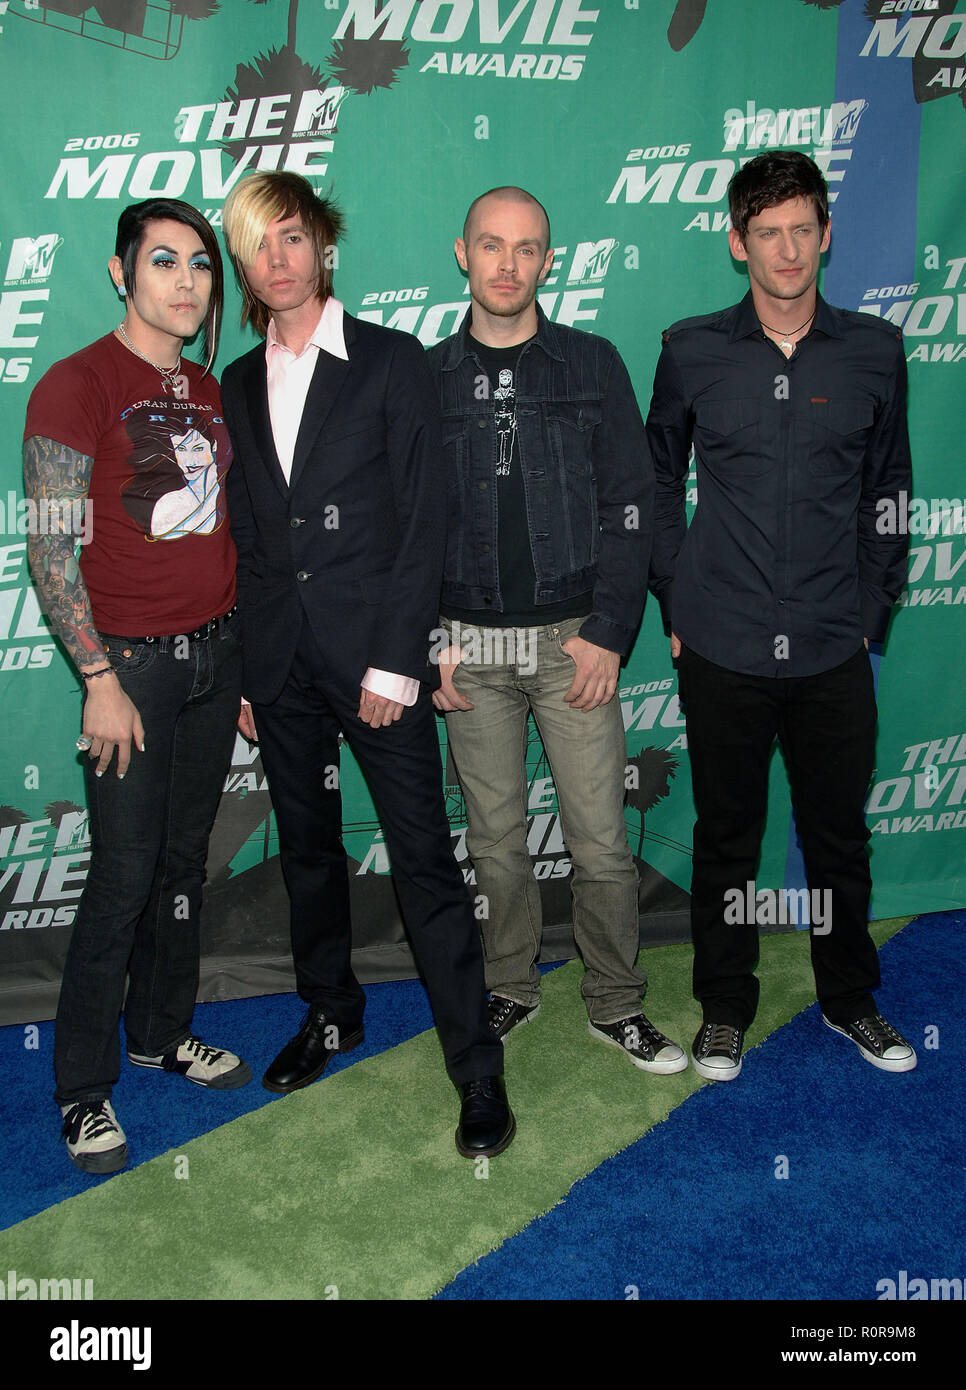 AFI arriving at the MTV Movie Awards at the Sony Lot in Los Angeles. June 3, 2006.          -            AFI_131.jpgAFI_131  Event in Hollywood Life - - Stock Image